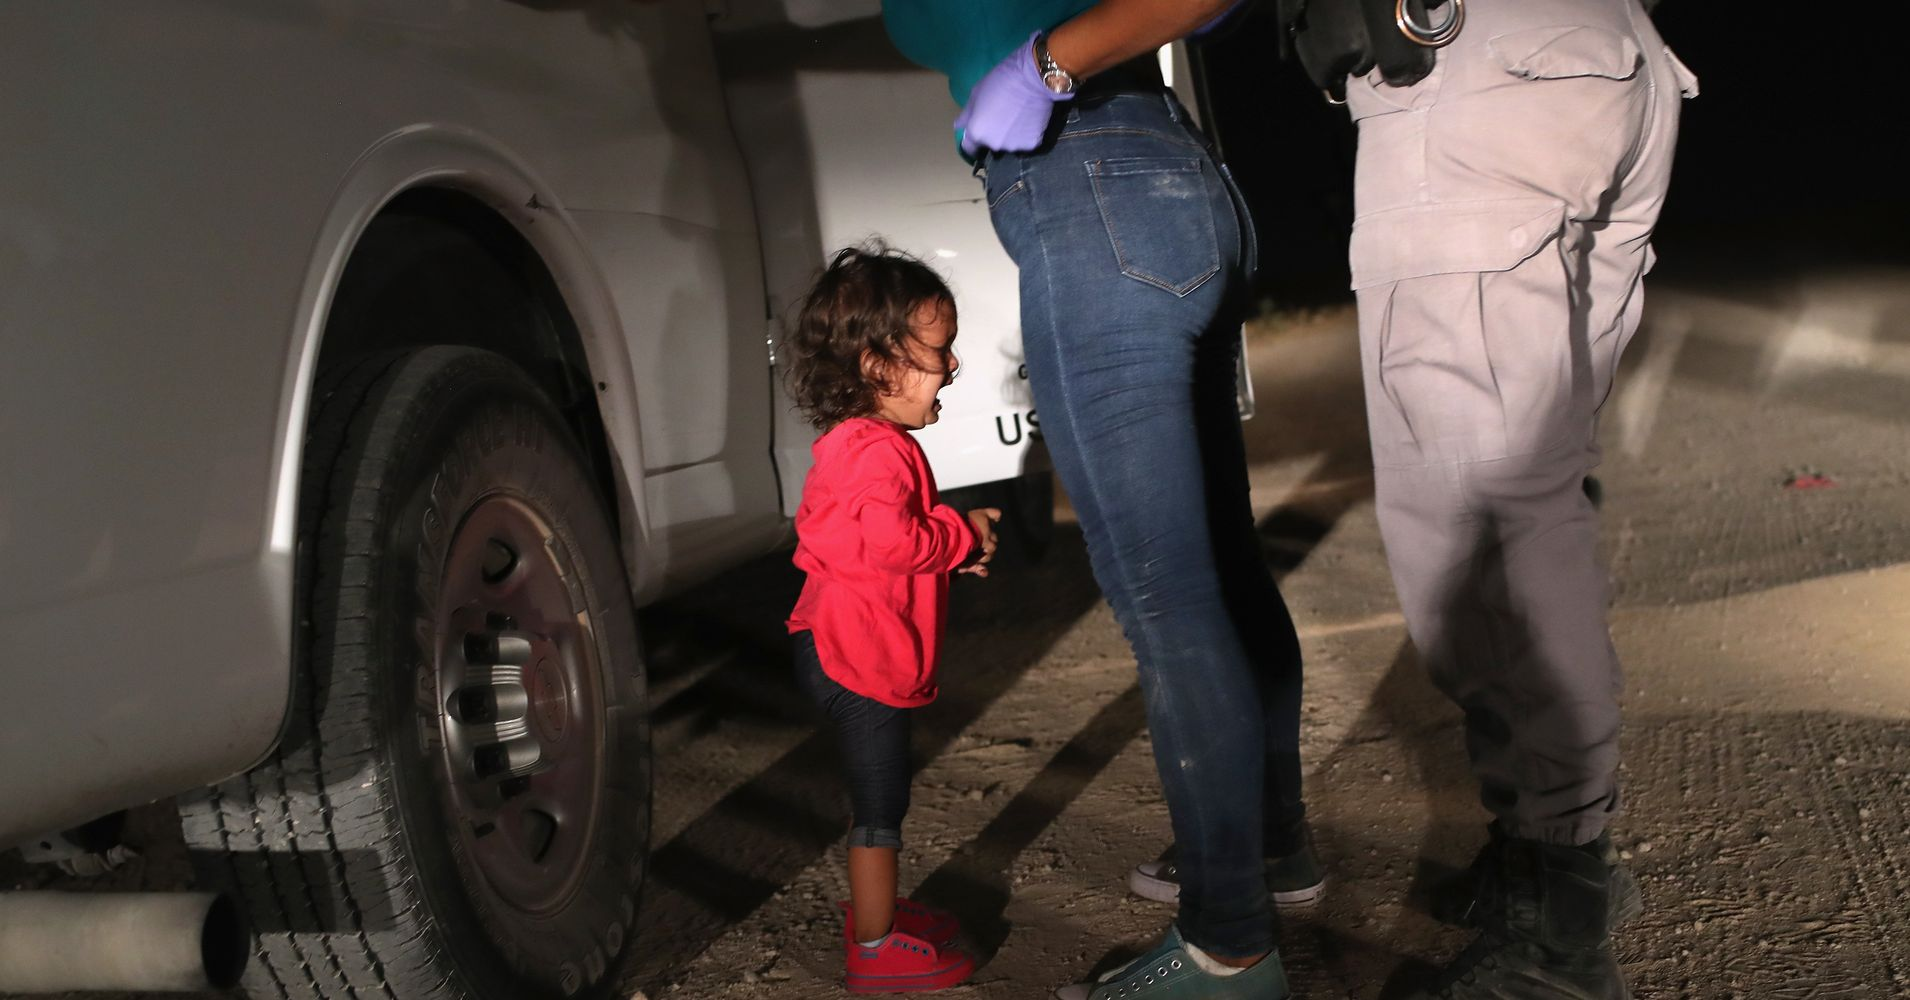 Christian Leaders To Jeff Sessions: The Bible Does Not Justify Separating Families